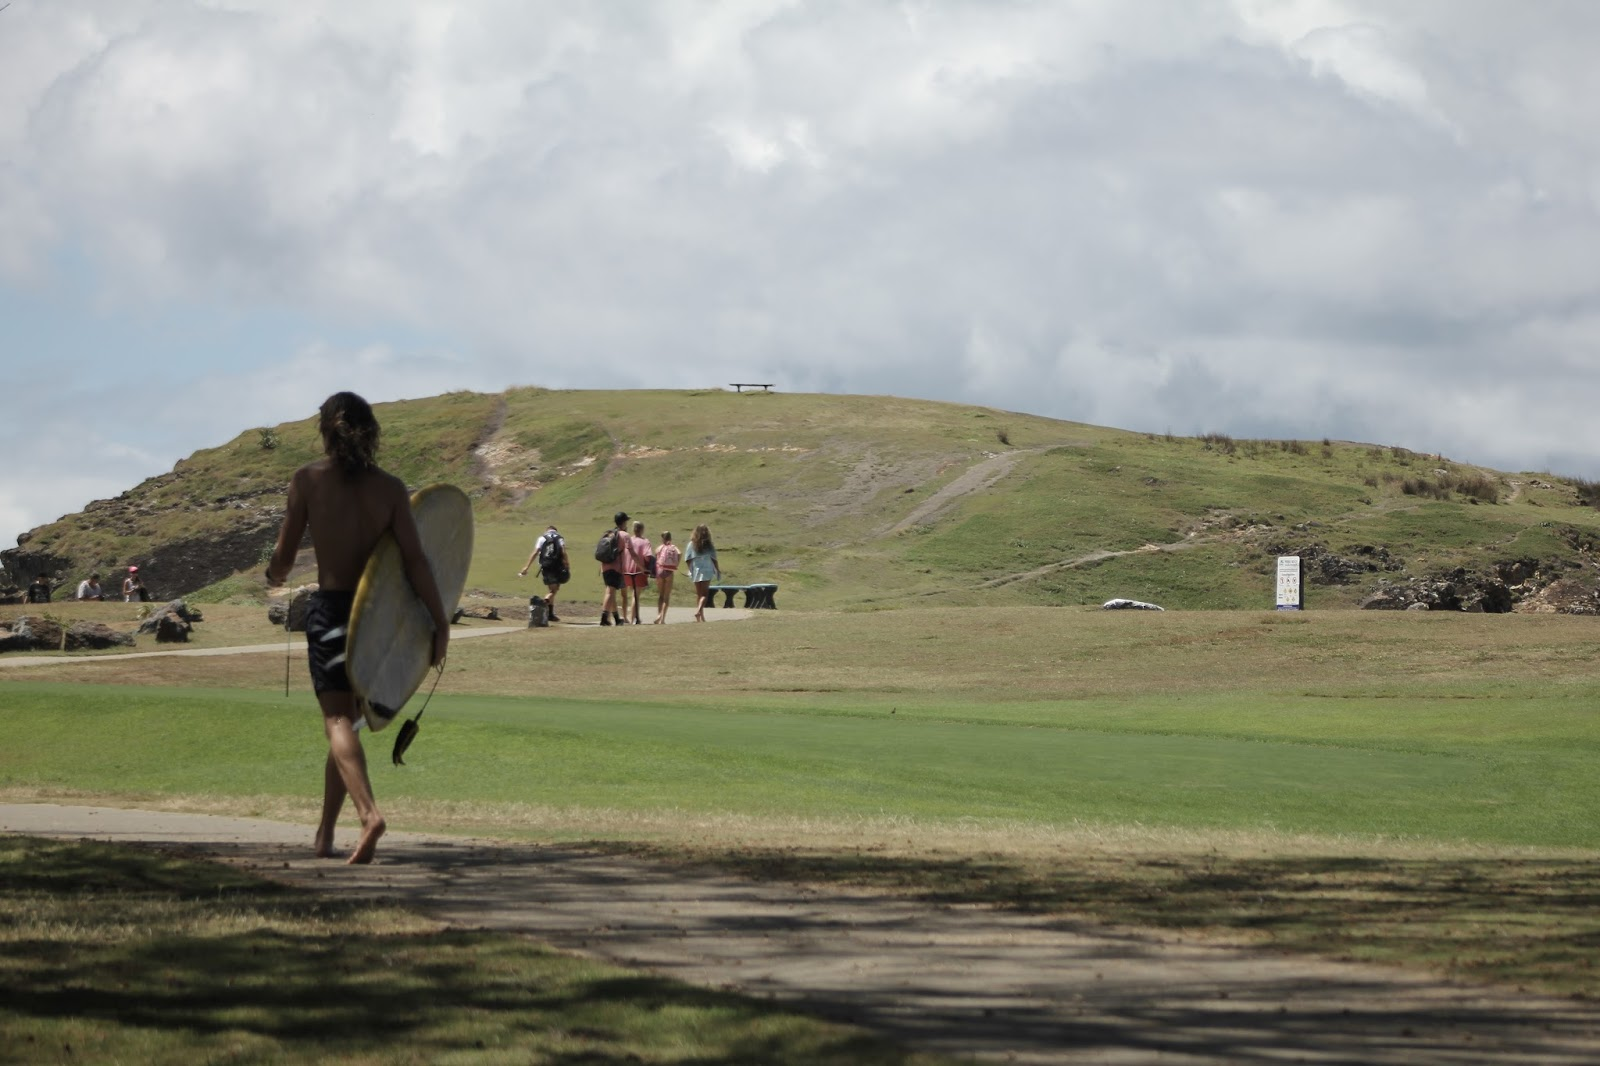 06-03-2016-australia-siebert-surfboards-10